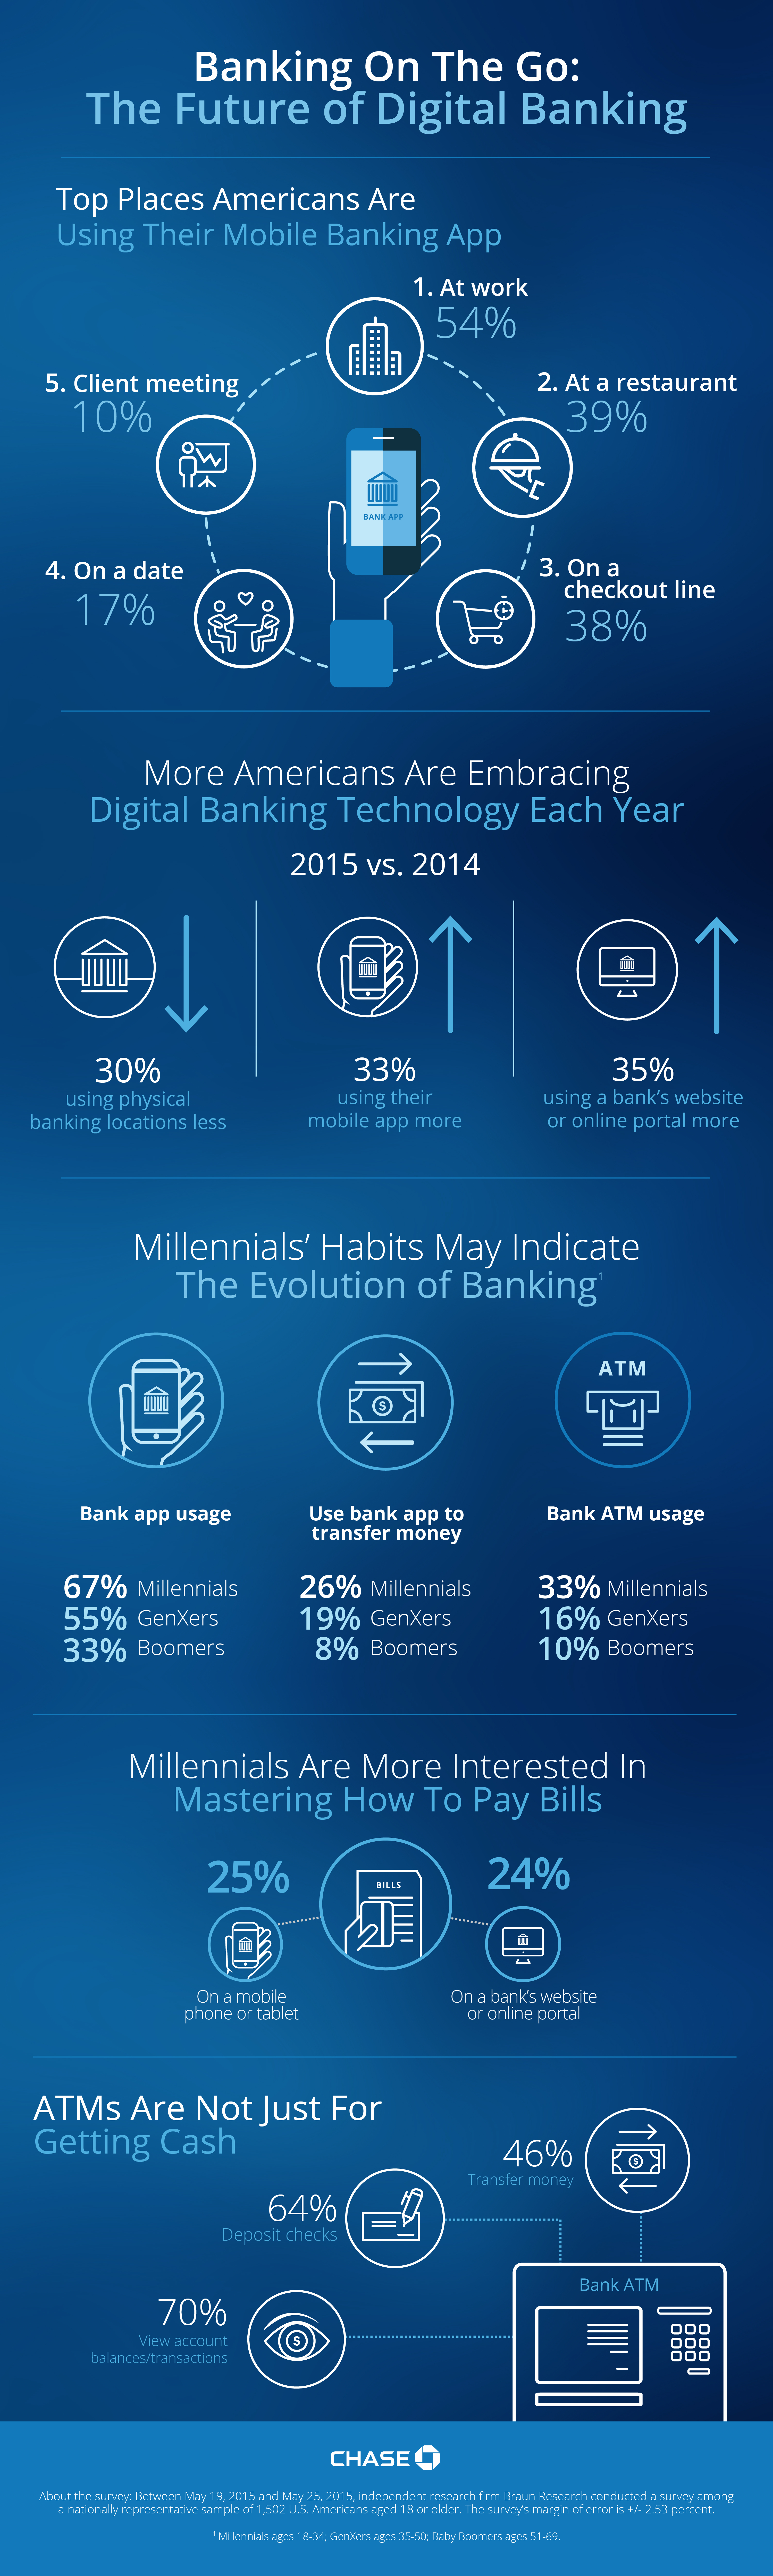 More U.S. Consumers Bank On The Go, Even on Dates | Business Wire